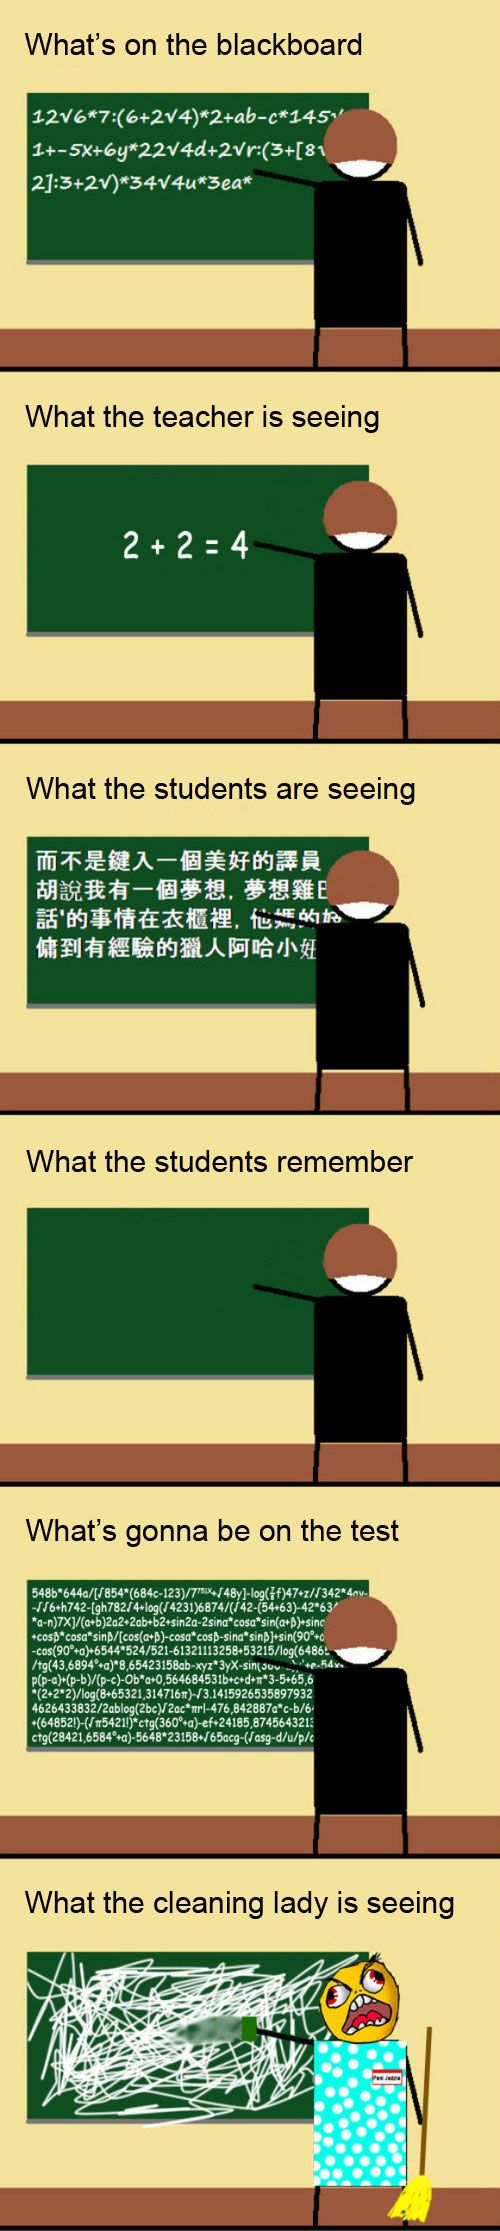 Best 25+ Funny School Ideas On Pinterest | Funny School Stuff, School Today  And Dont Lose Your Pen